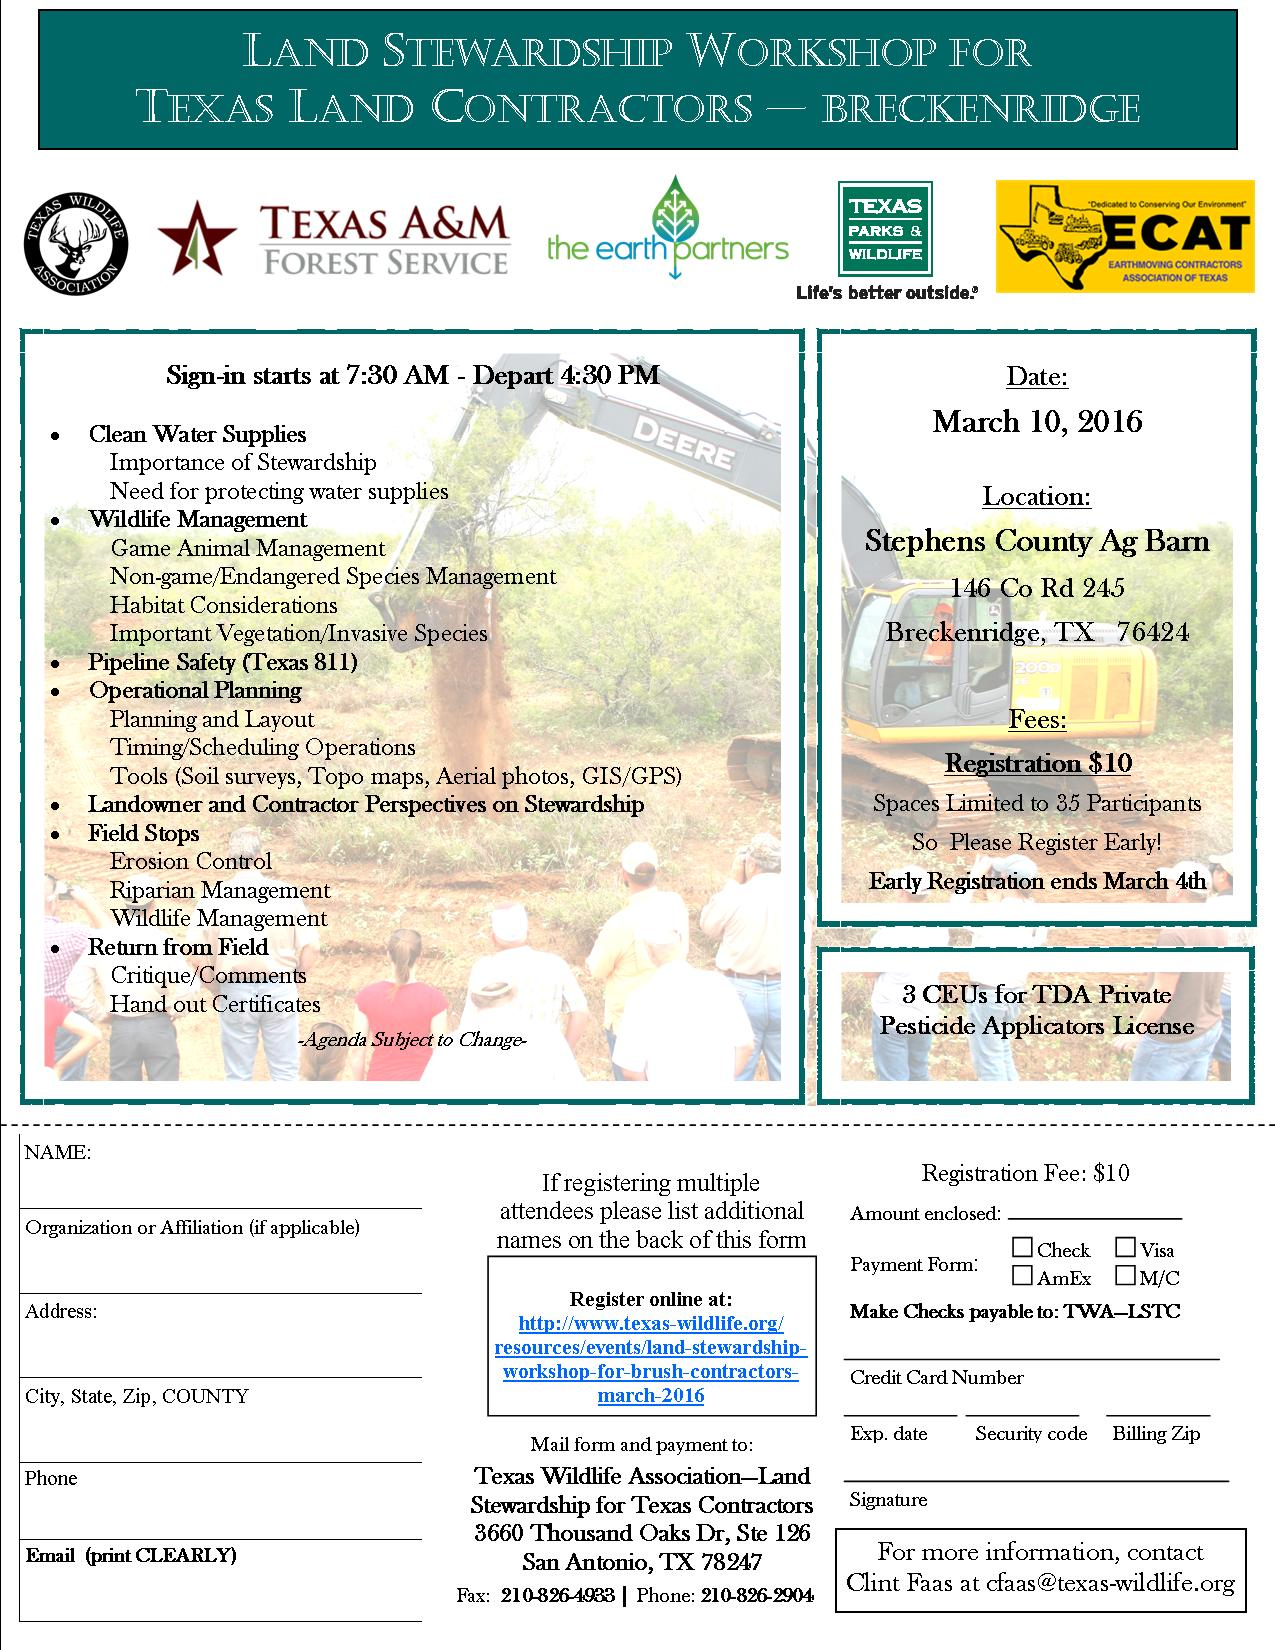 Brush Contractor March 2016  Registration